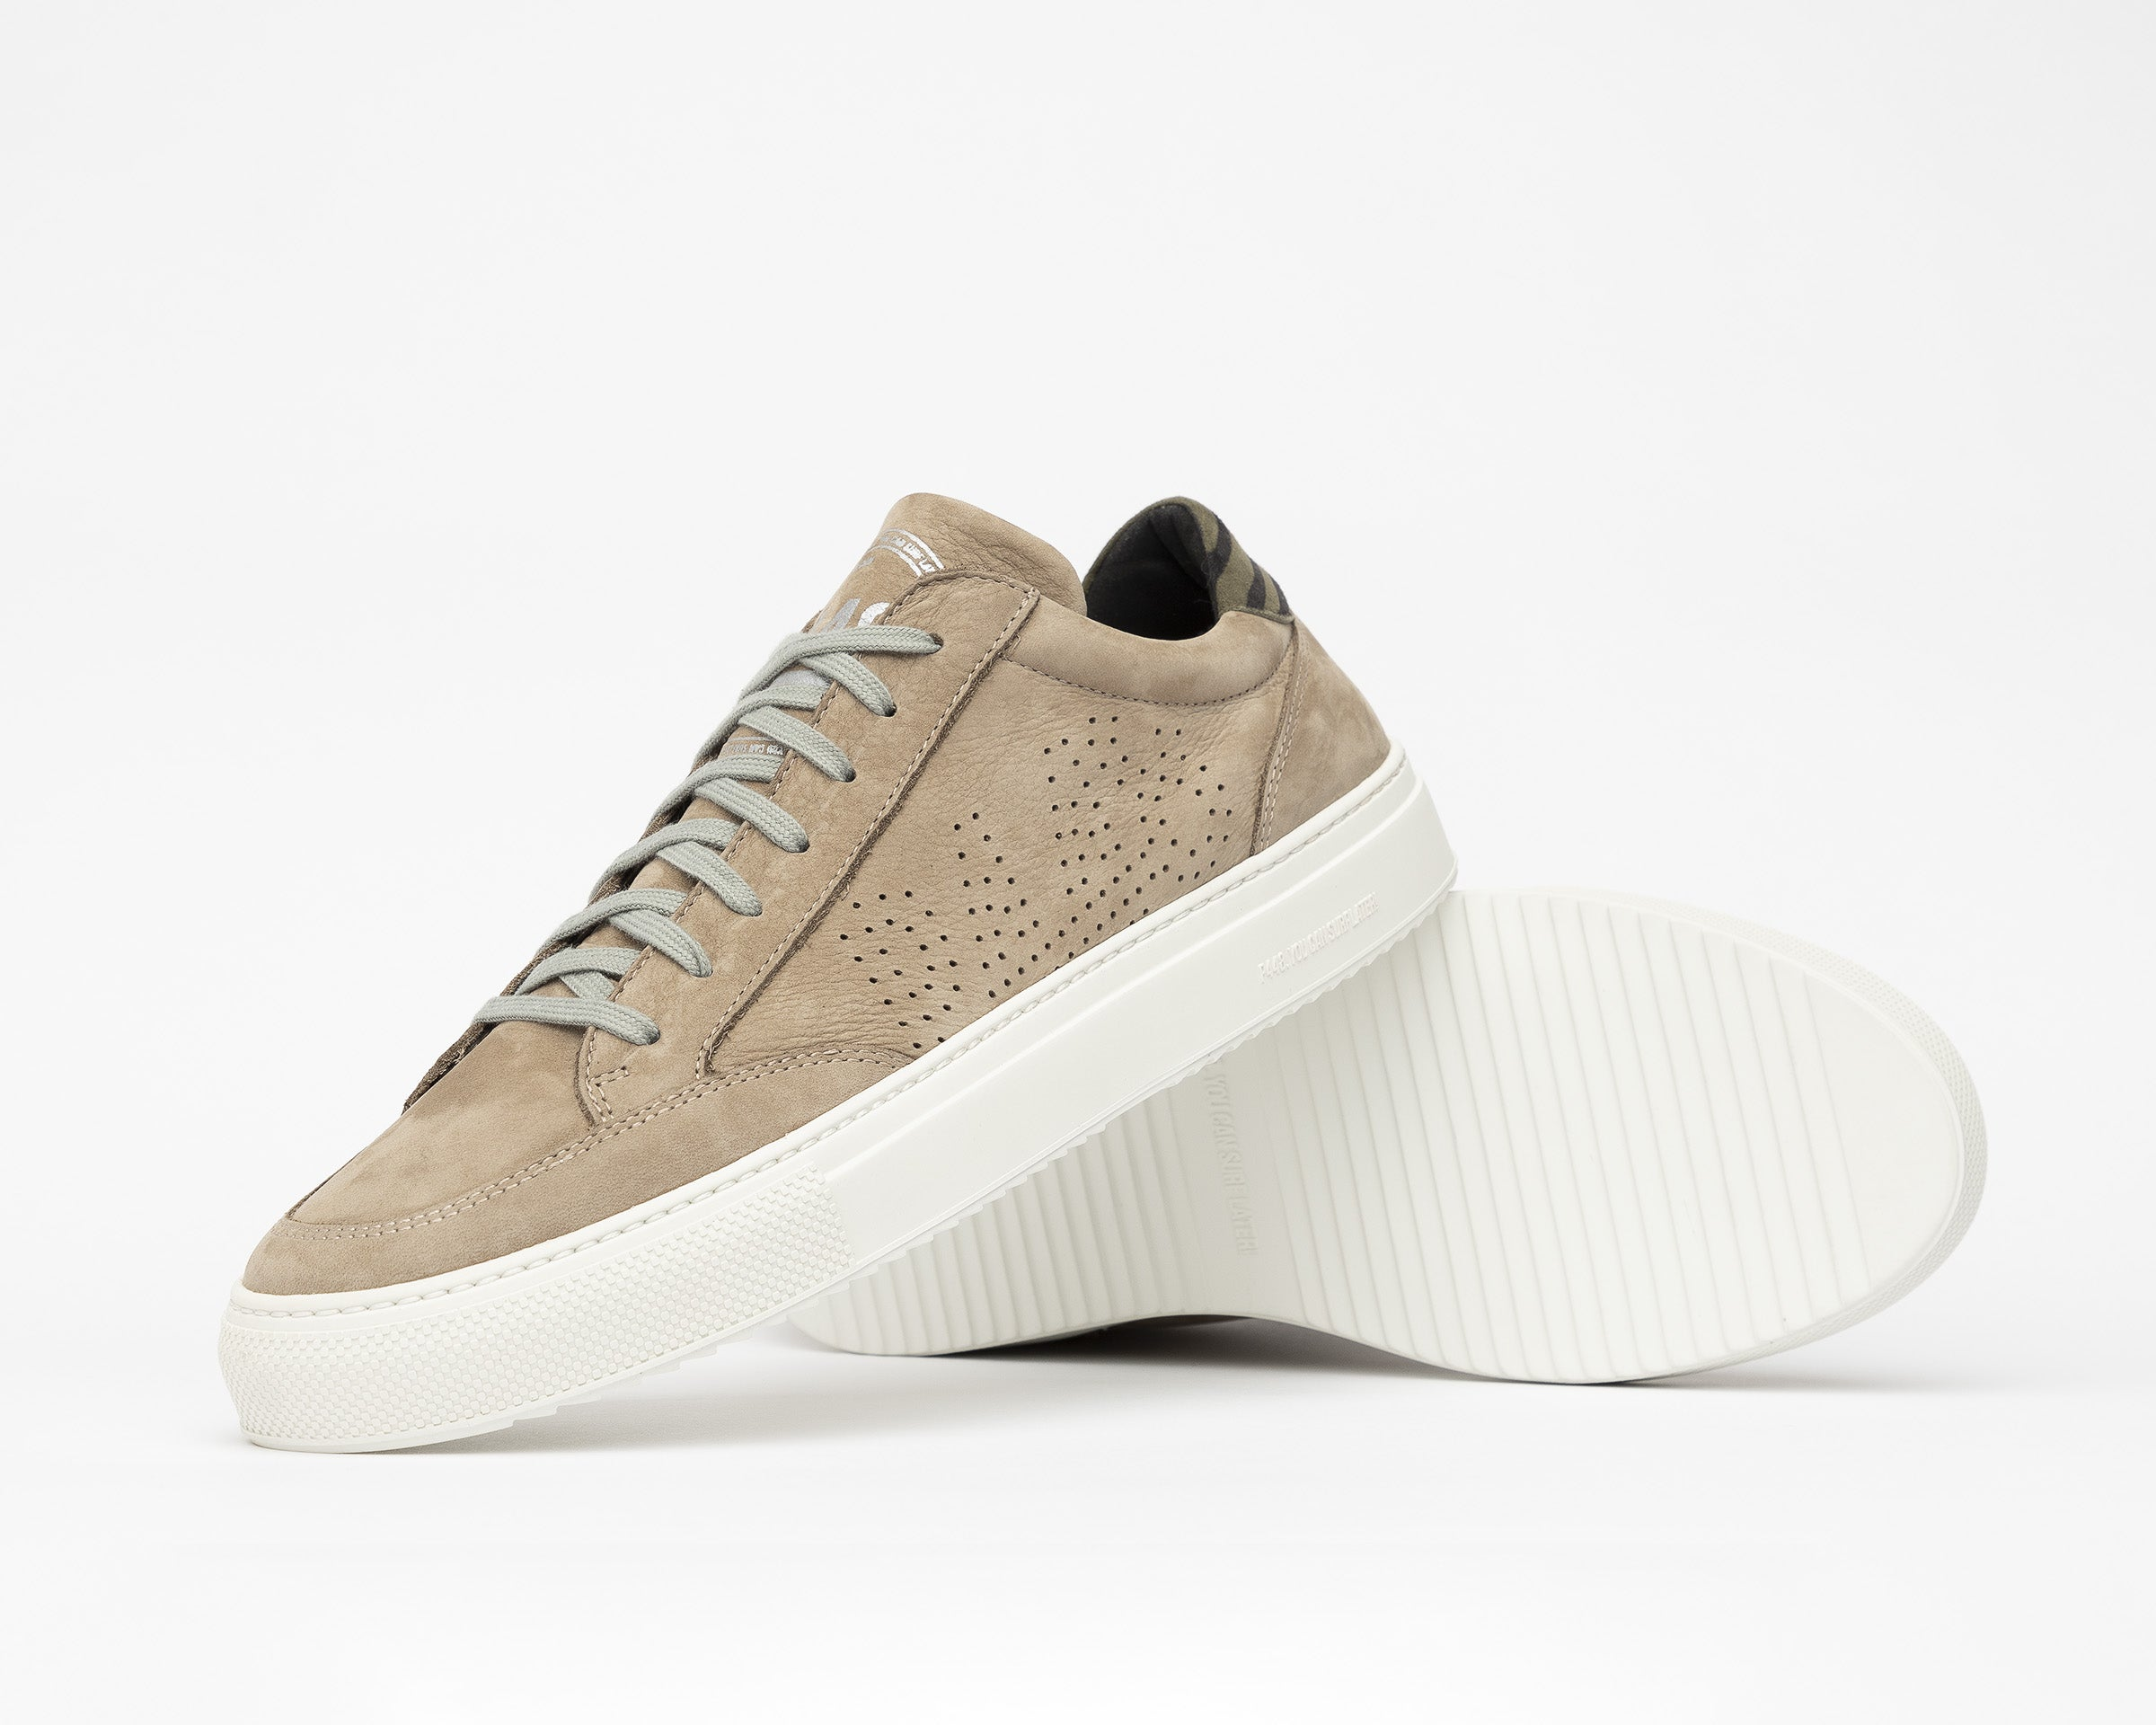 Soho Low-Top Sneaker in Gray Nab - Detail 1